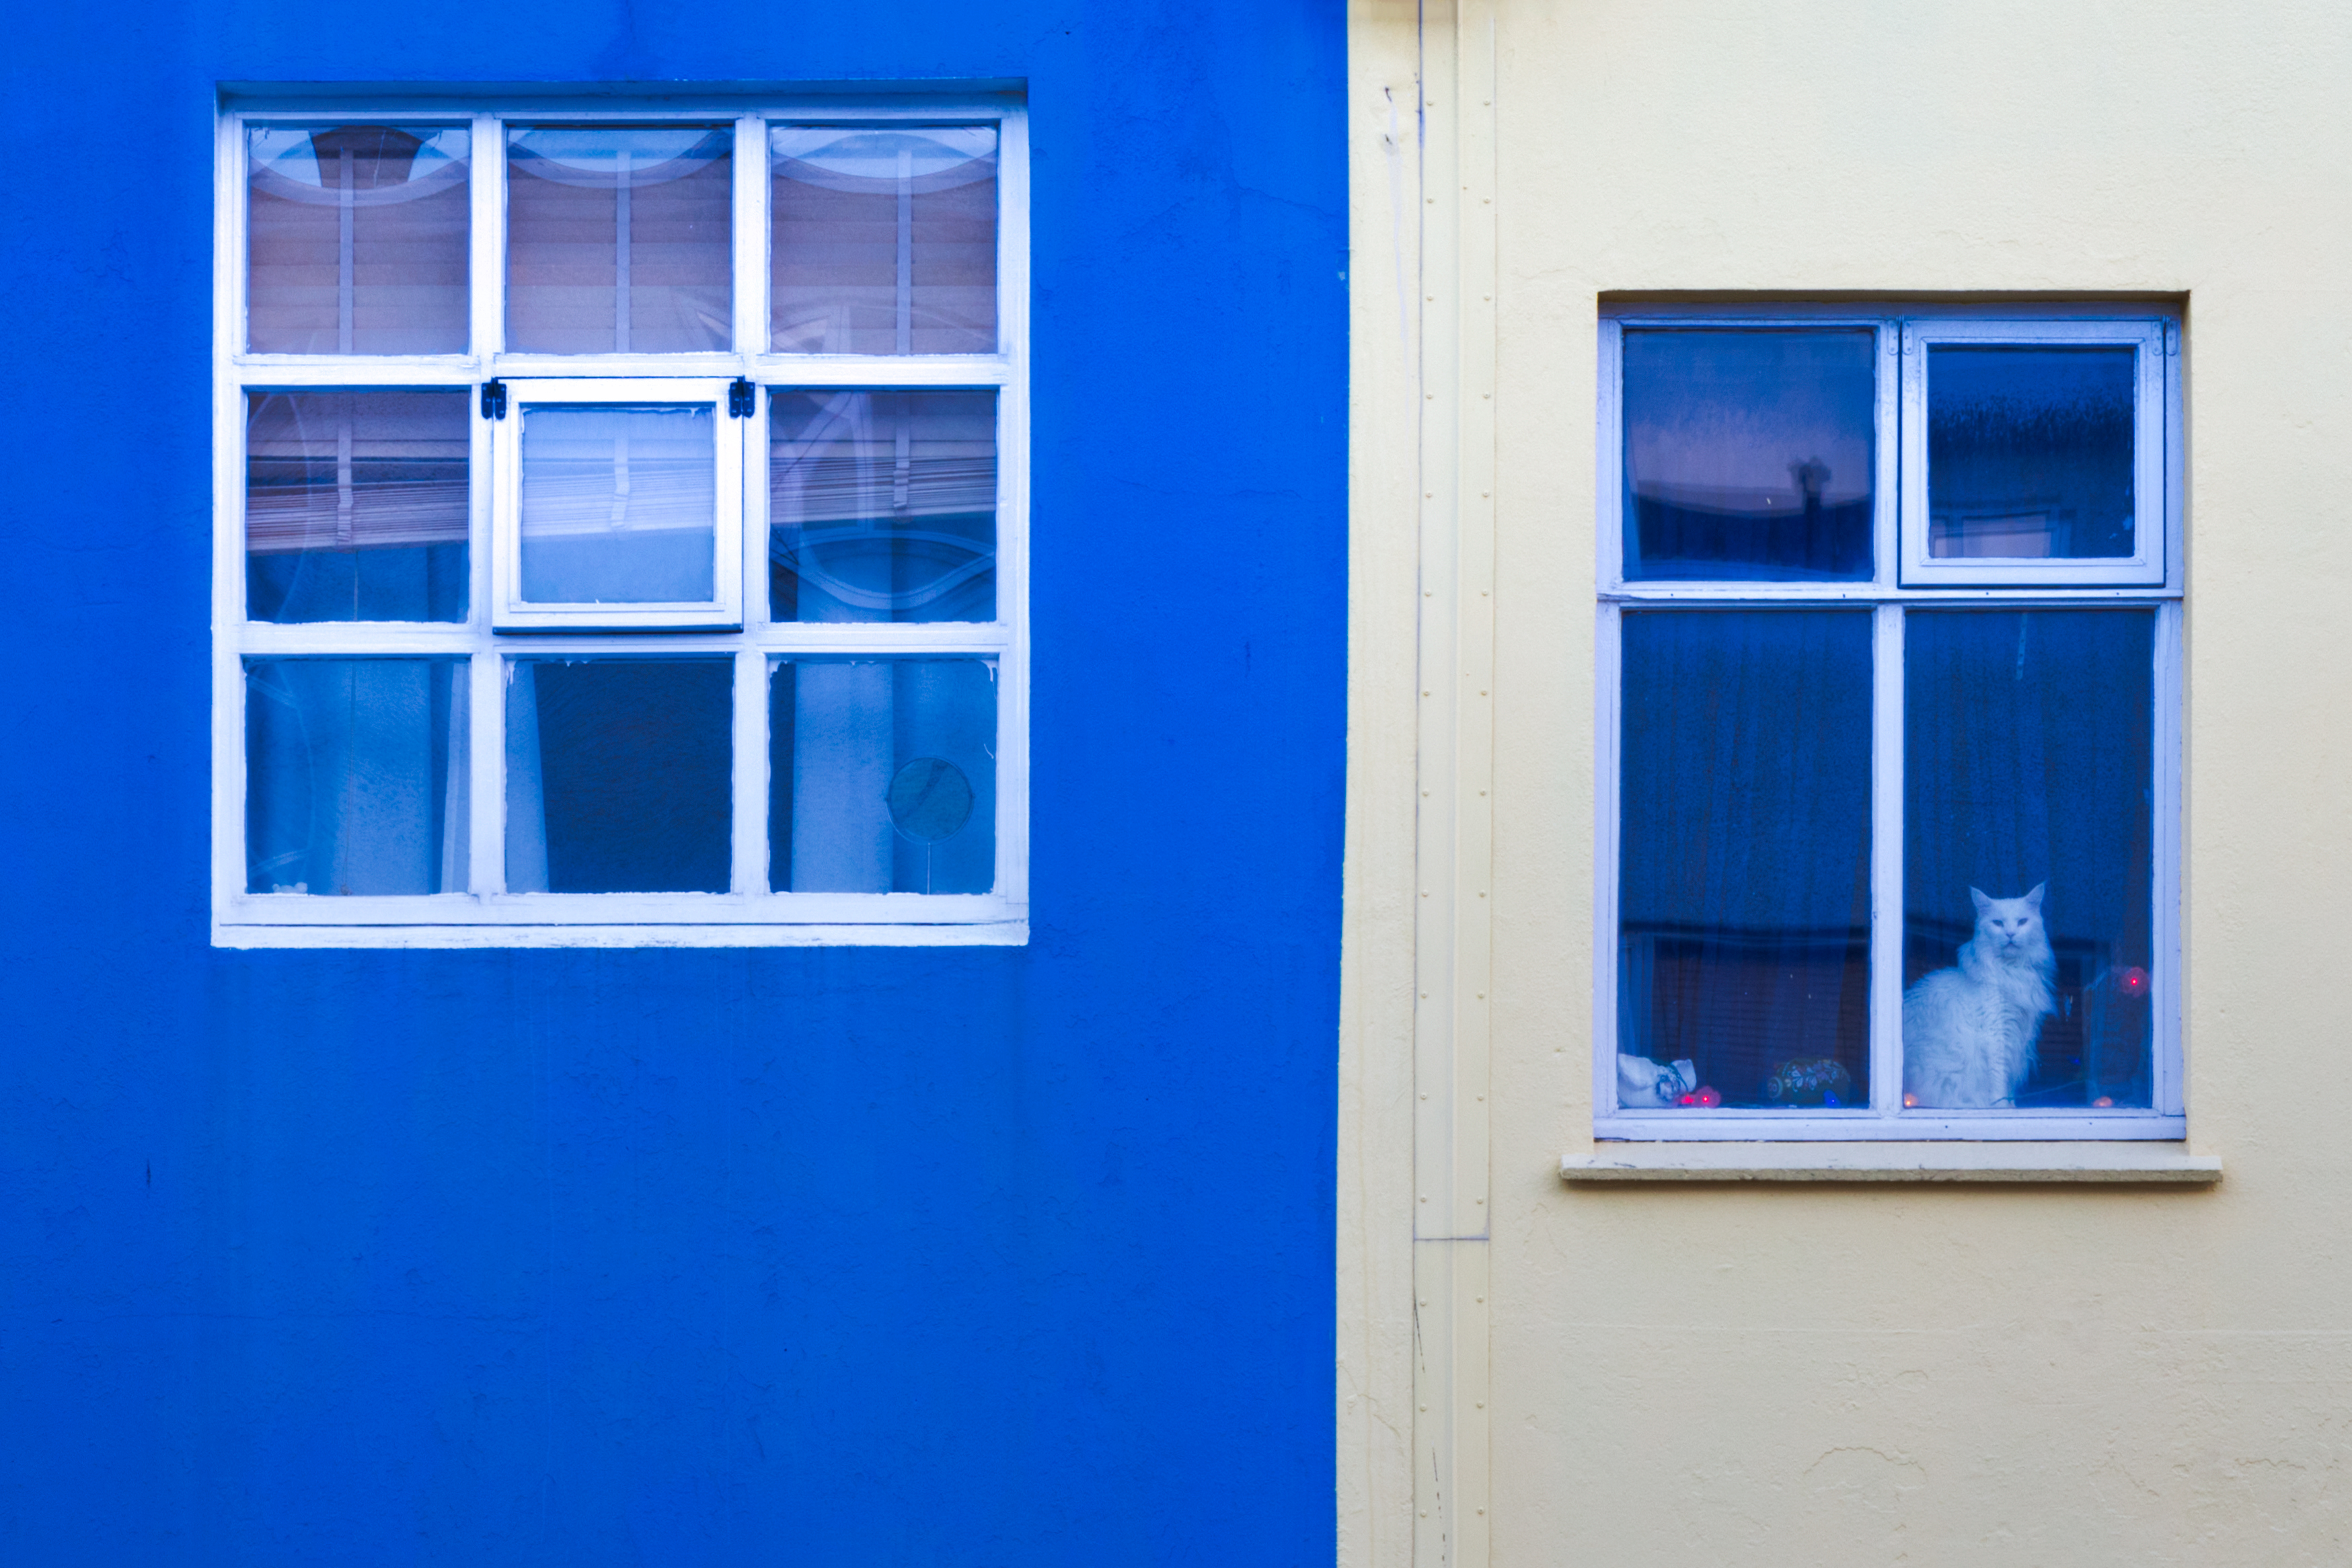 A cat sitting in an apartment window in Reykjavik, Iceland.